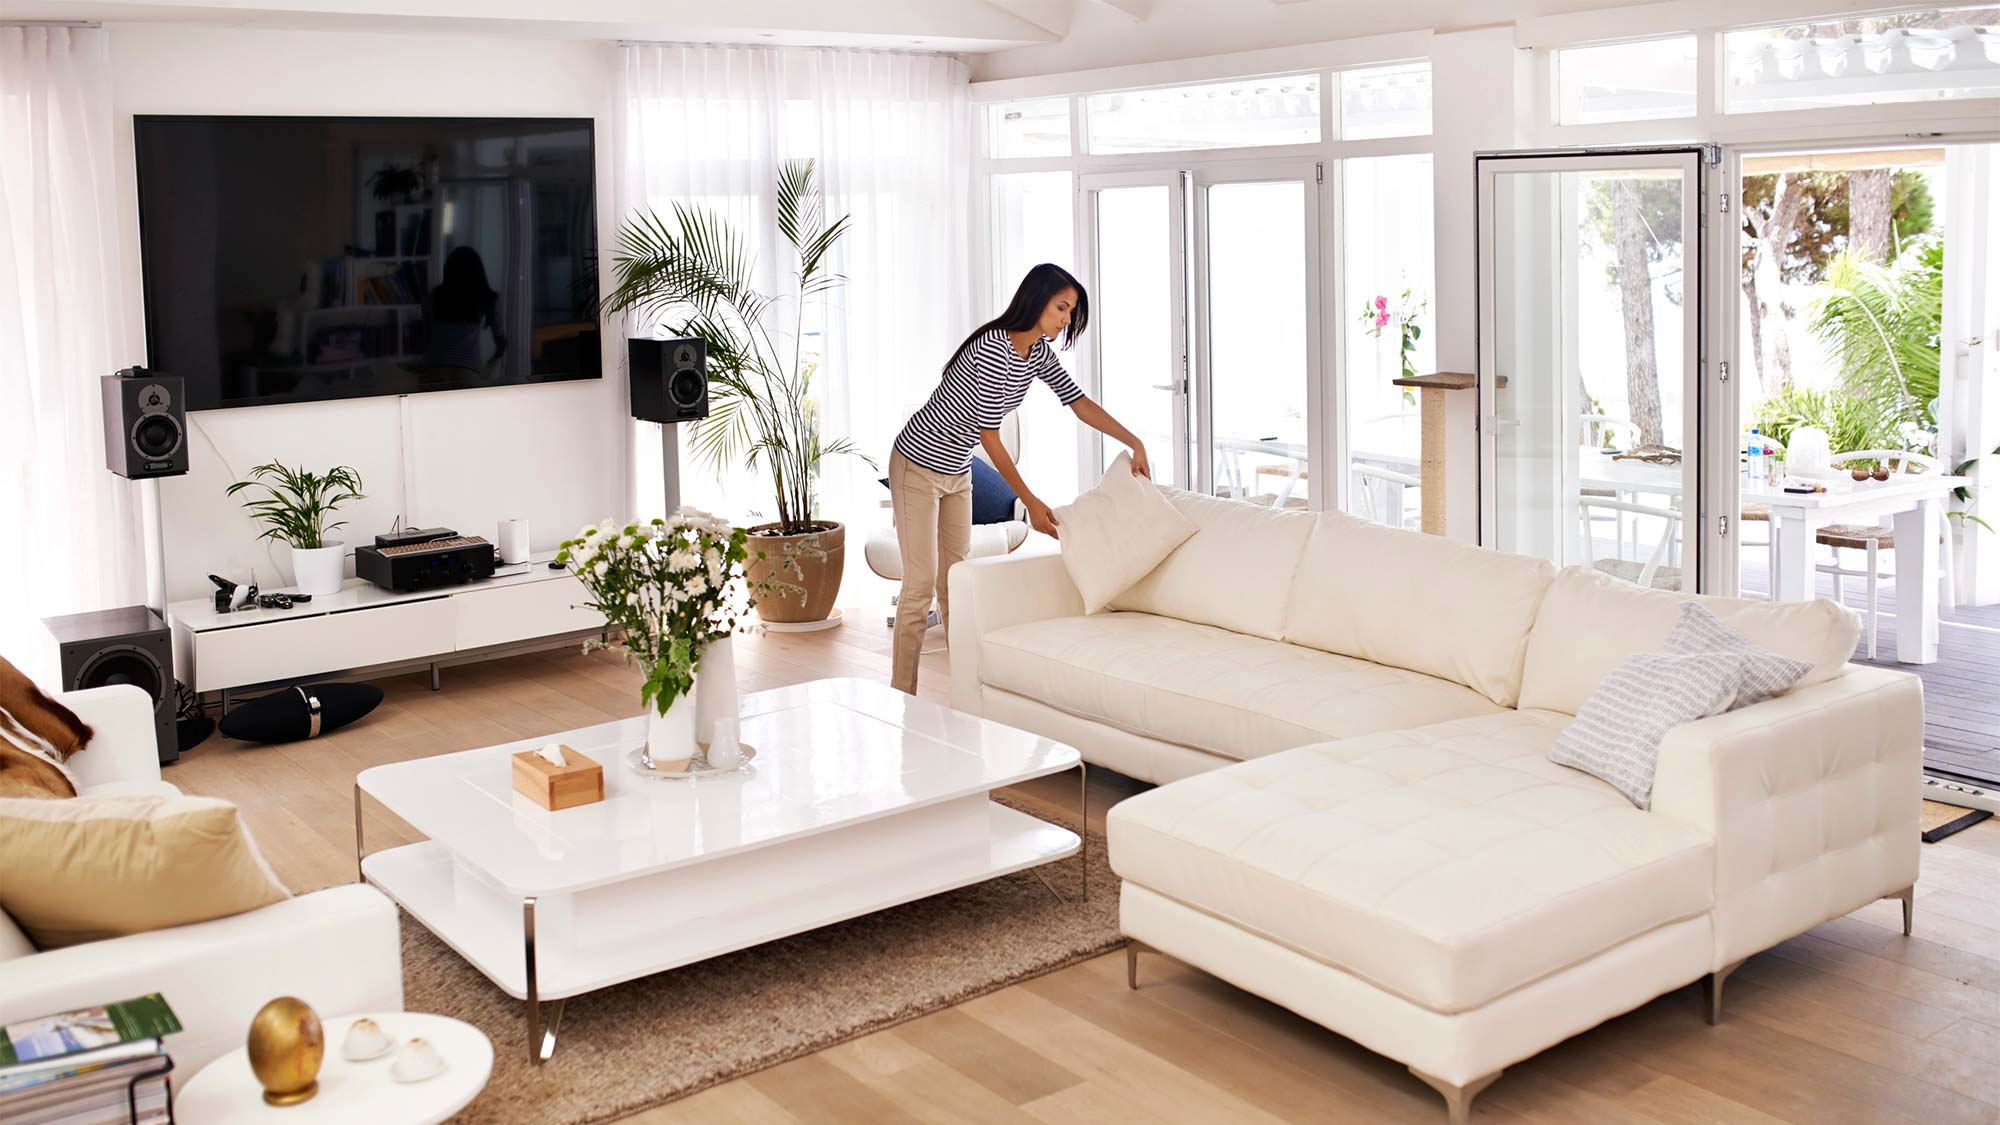 Home Stagging Staging A House On A Budget 11 Ideas That Ll Wow Buyers Realtor